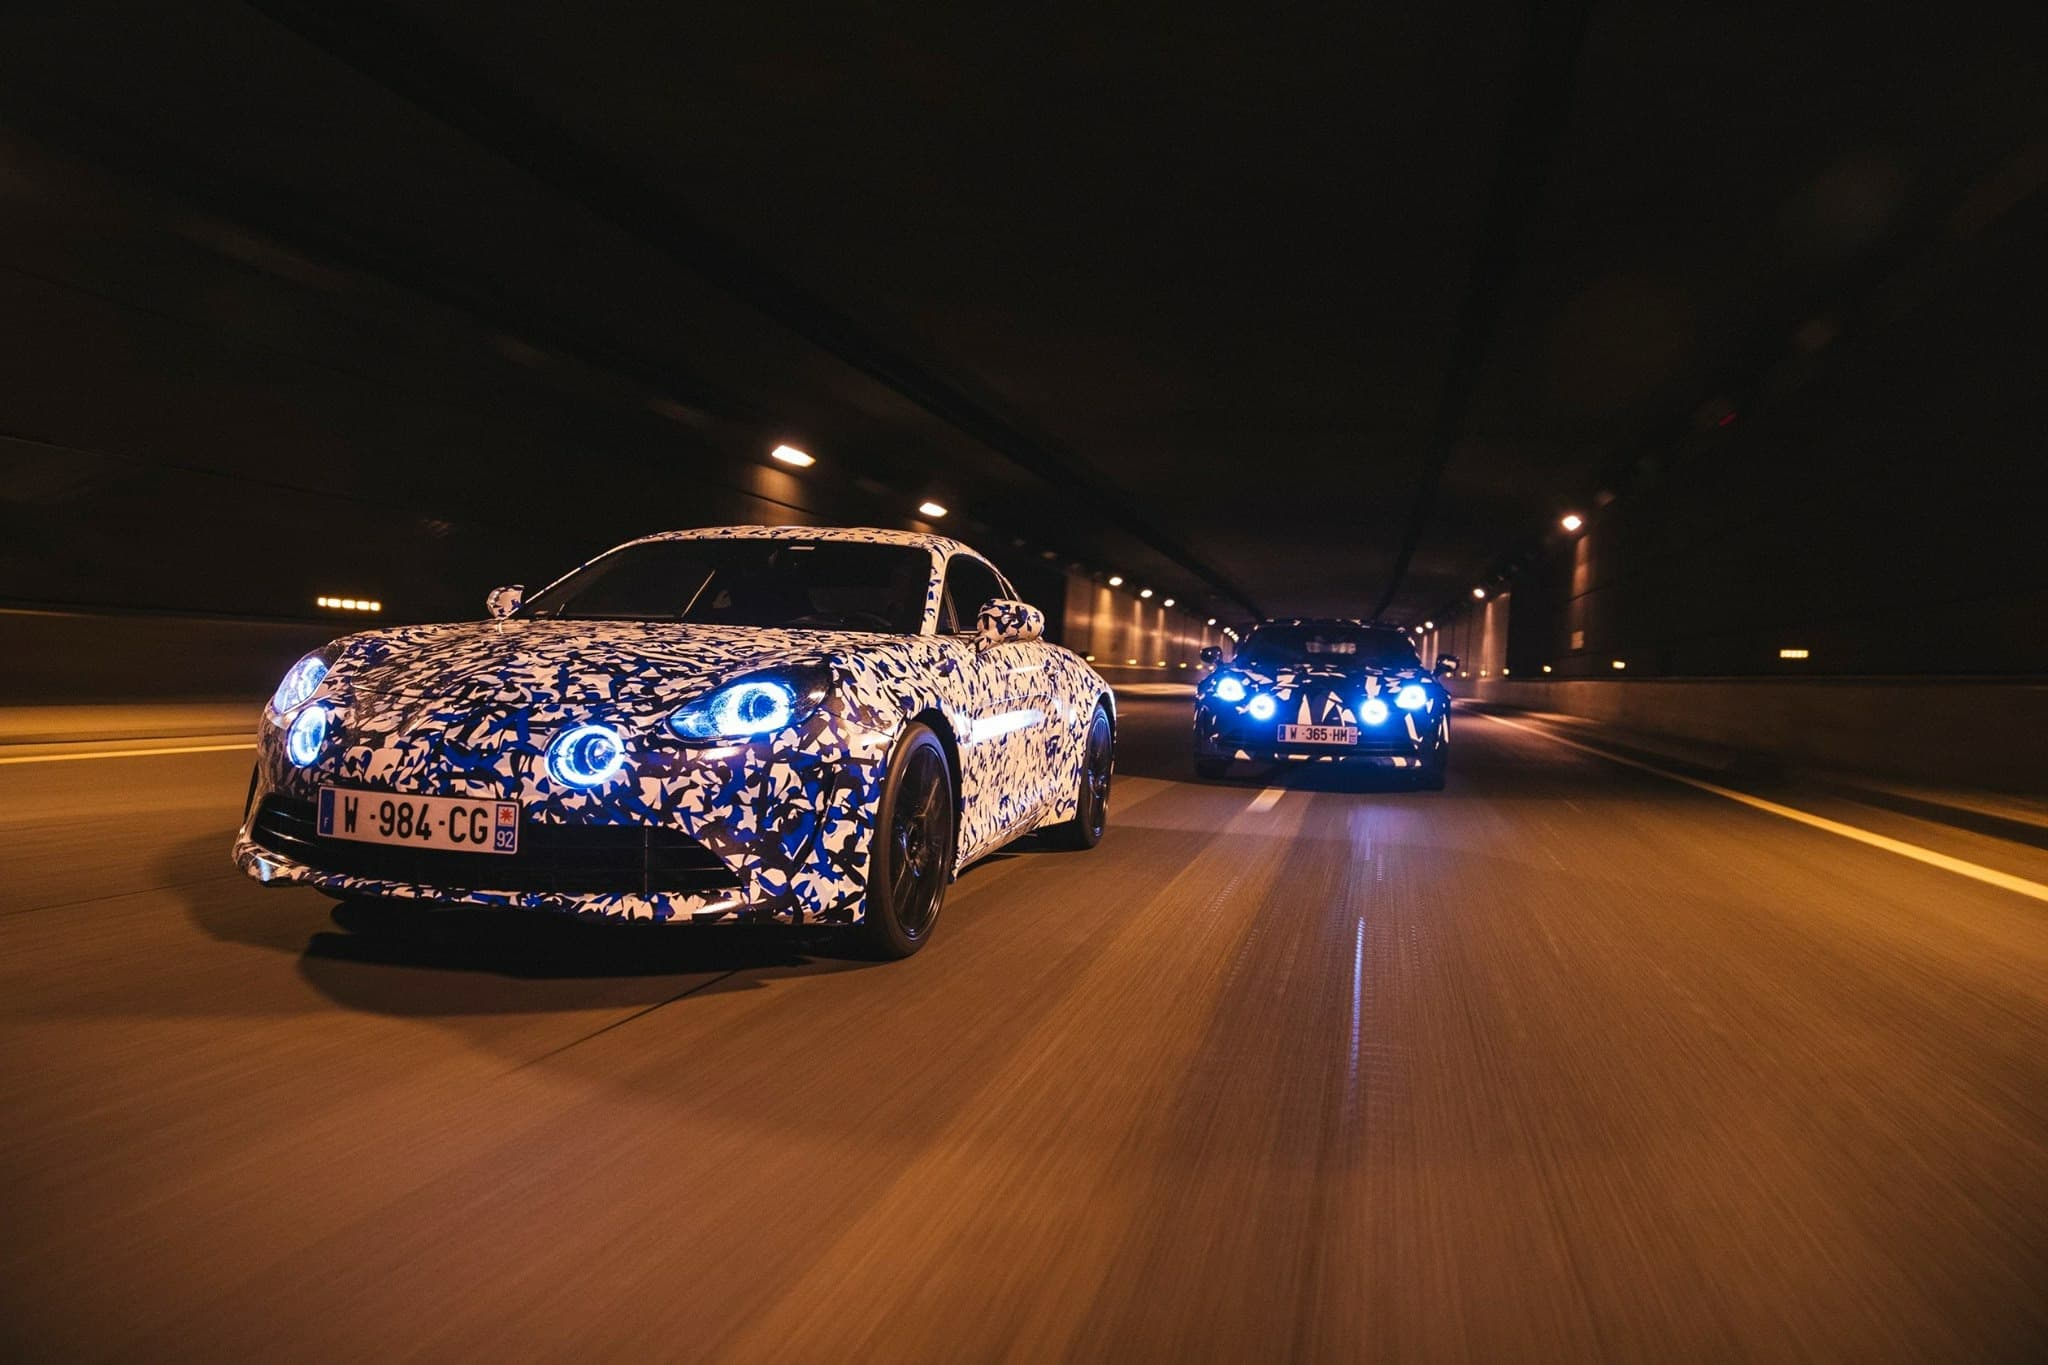 L'Alpine A110 / AS110 en virée nocturne à Paris